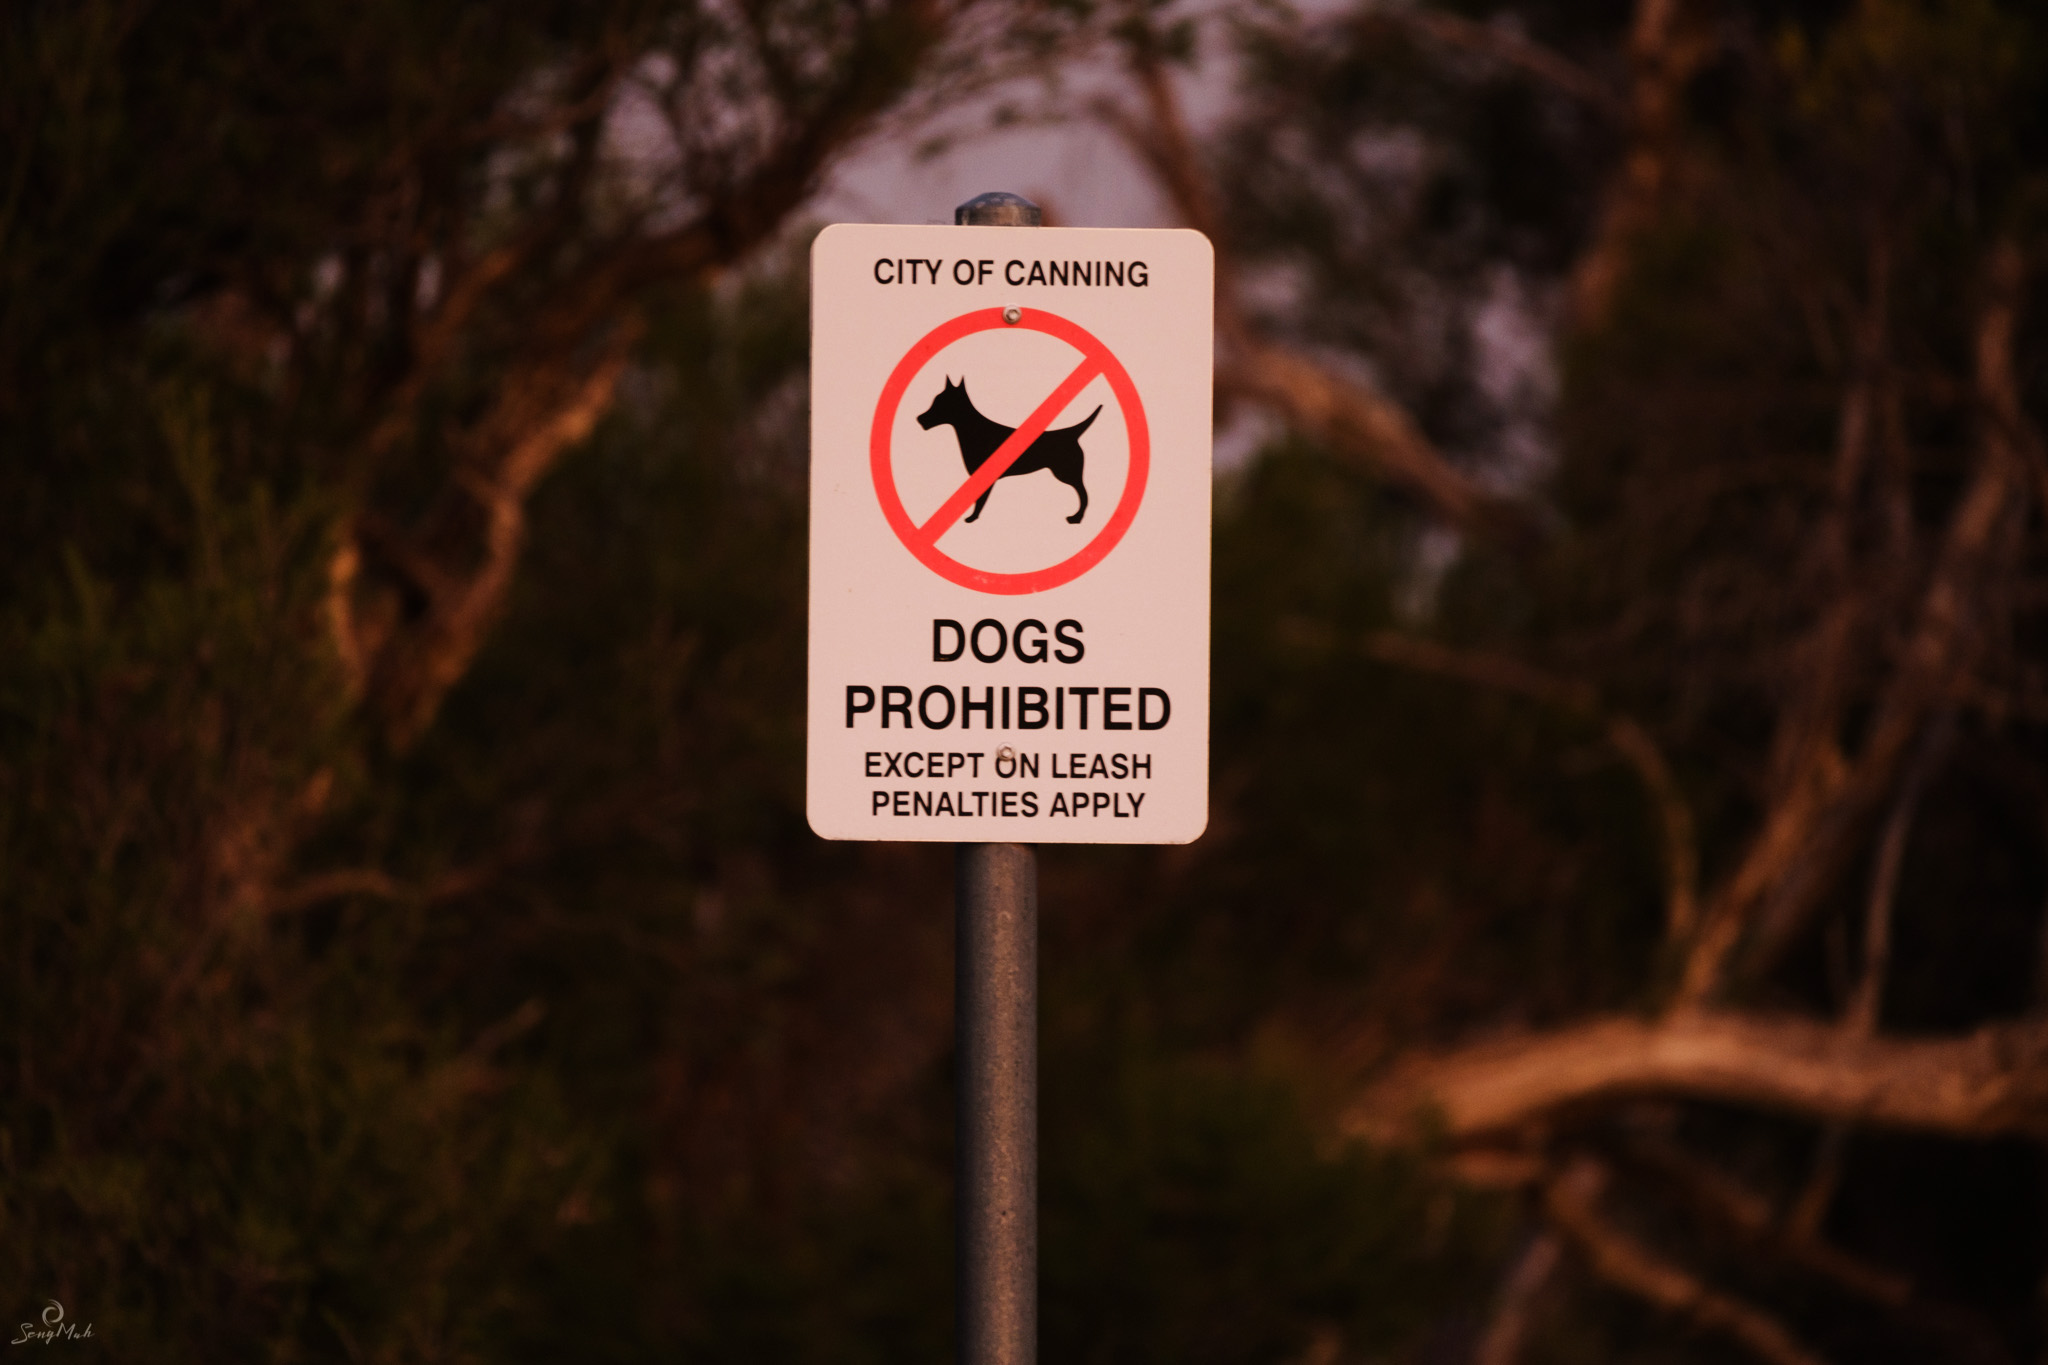 Dogs disallowed in park sign